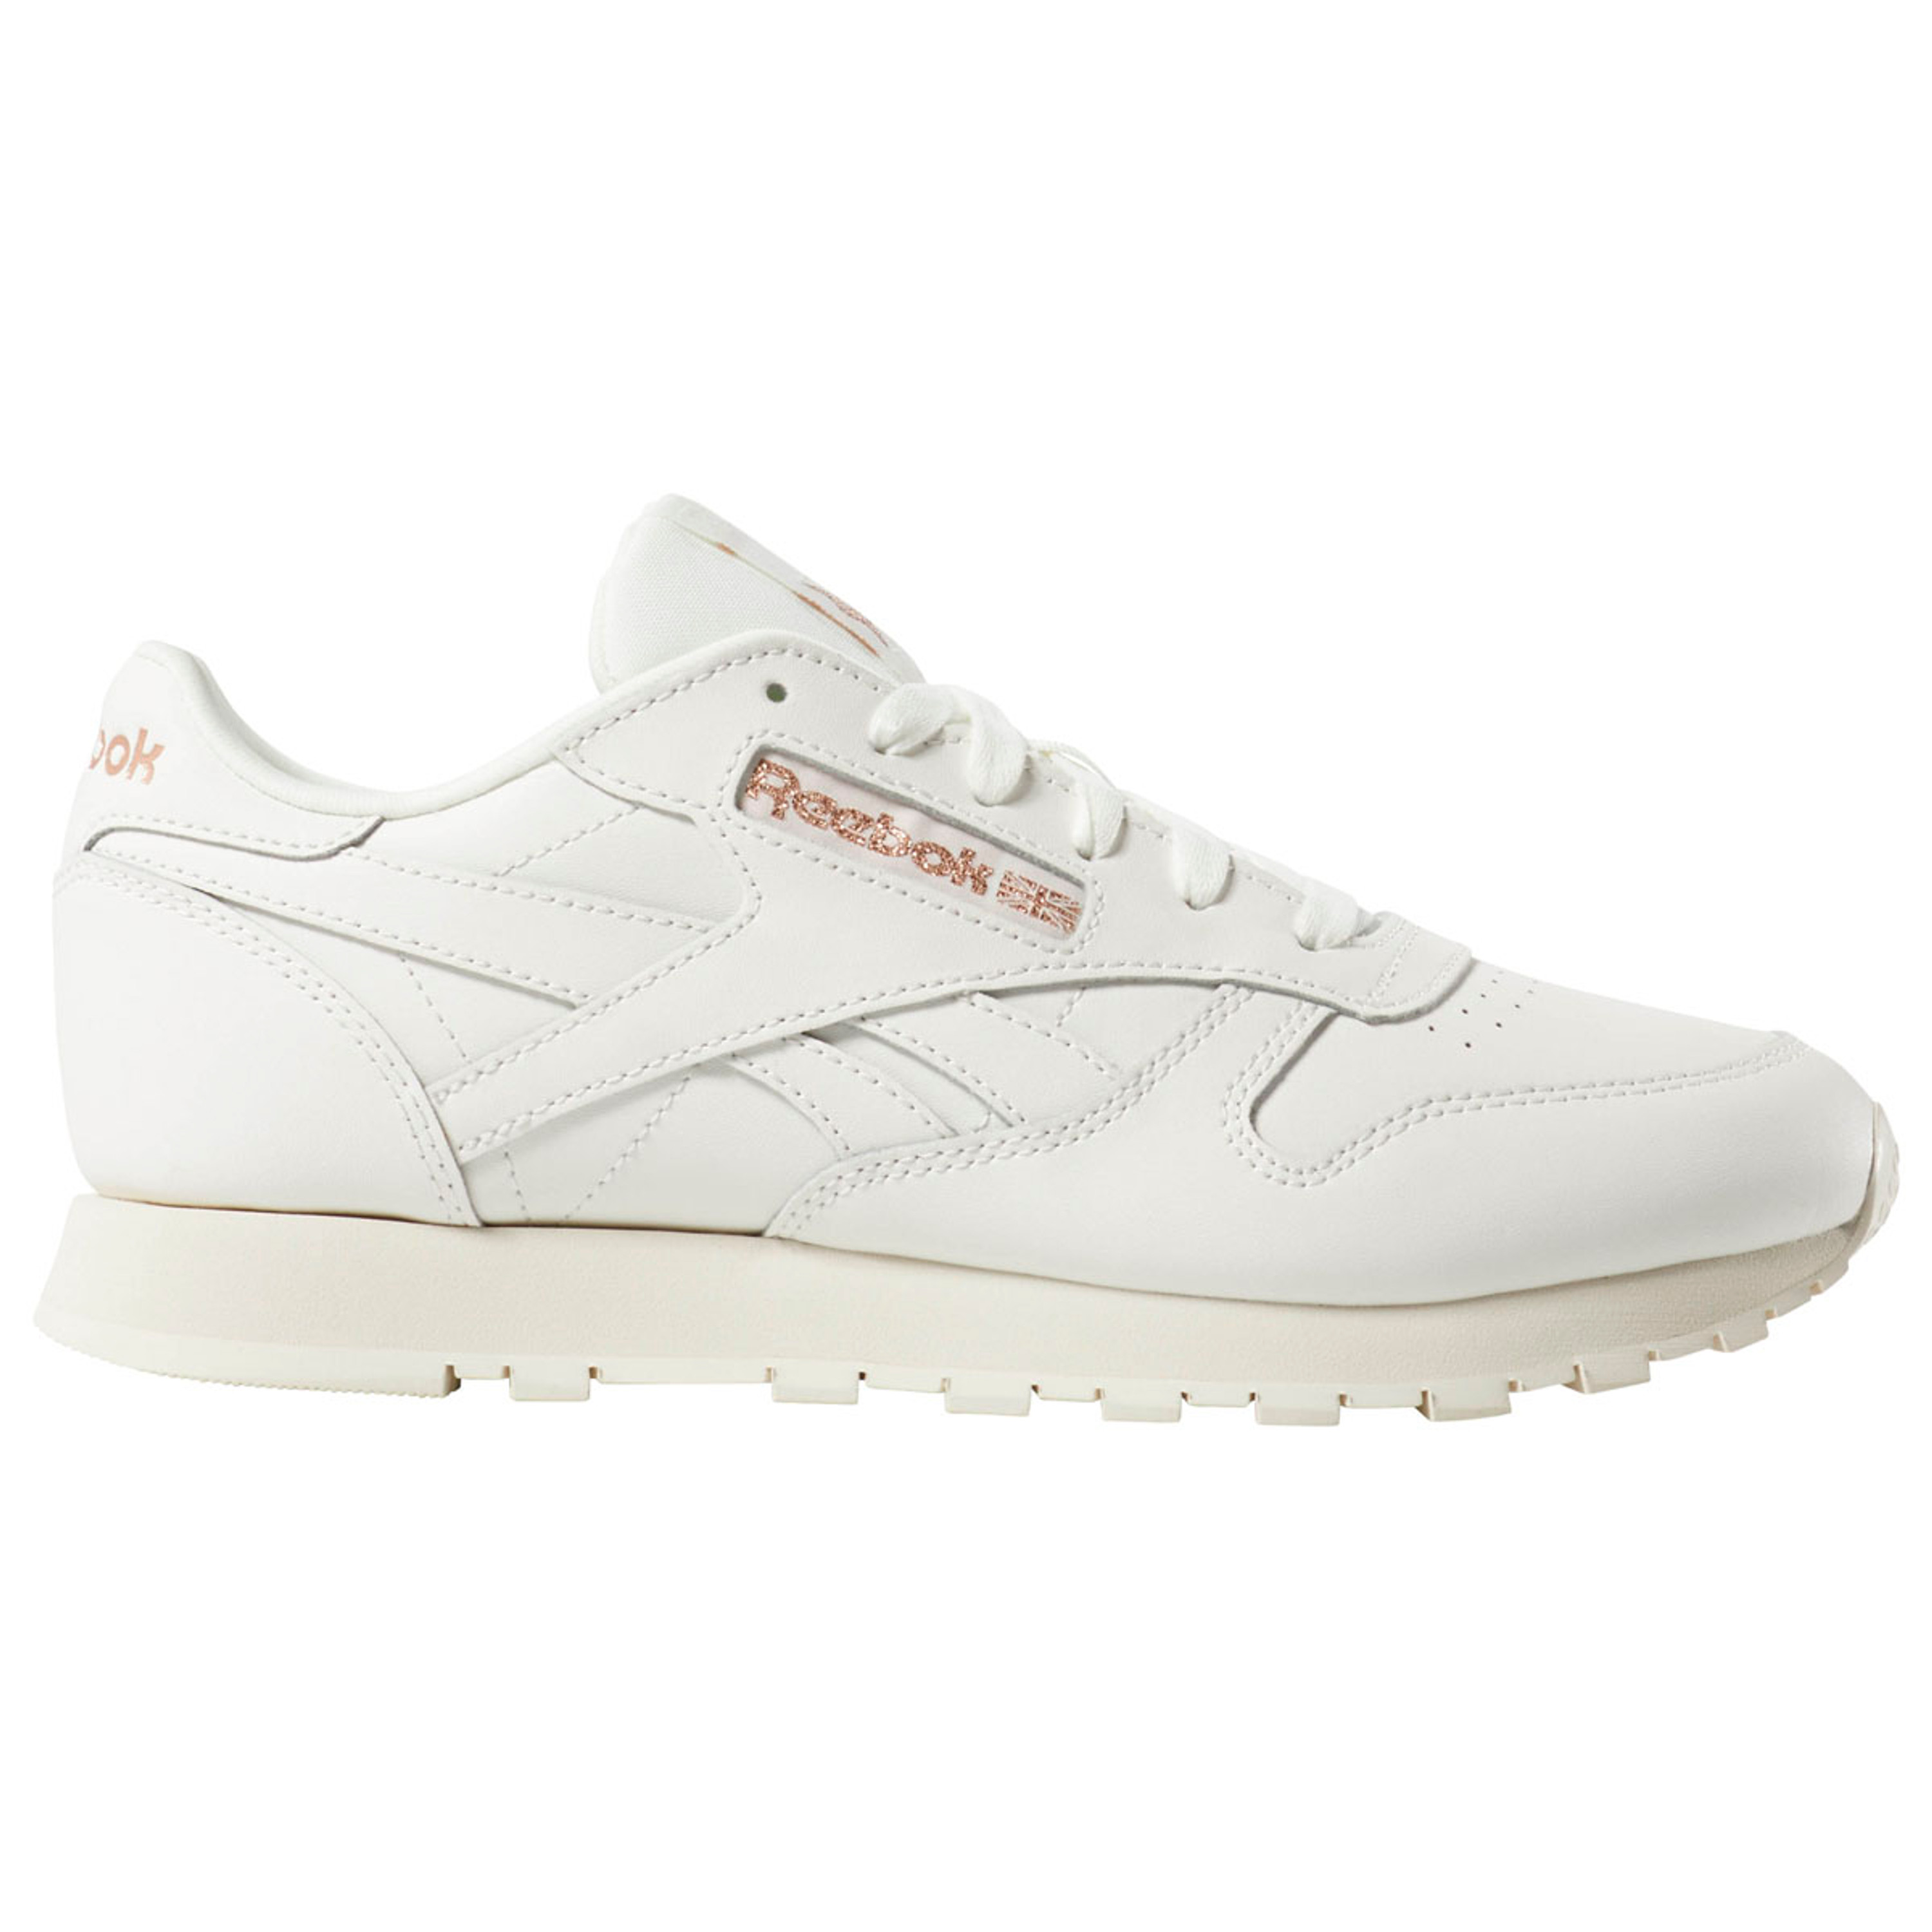 sports shoes 7a3dc bd2ab Reebok Classic Leather Retro & Vintage Sneakers für Damen in weiss